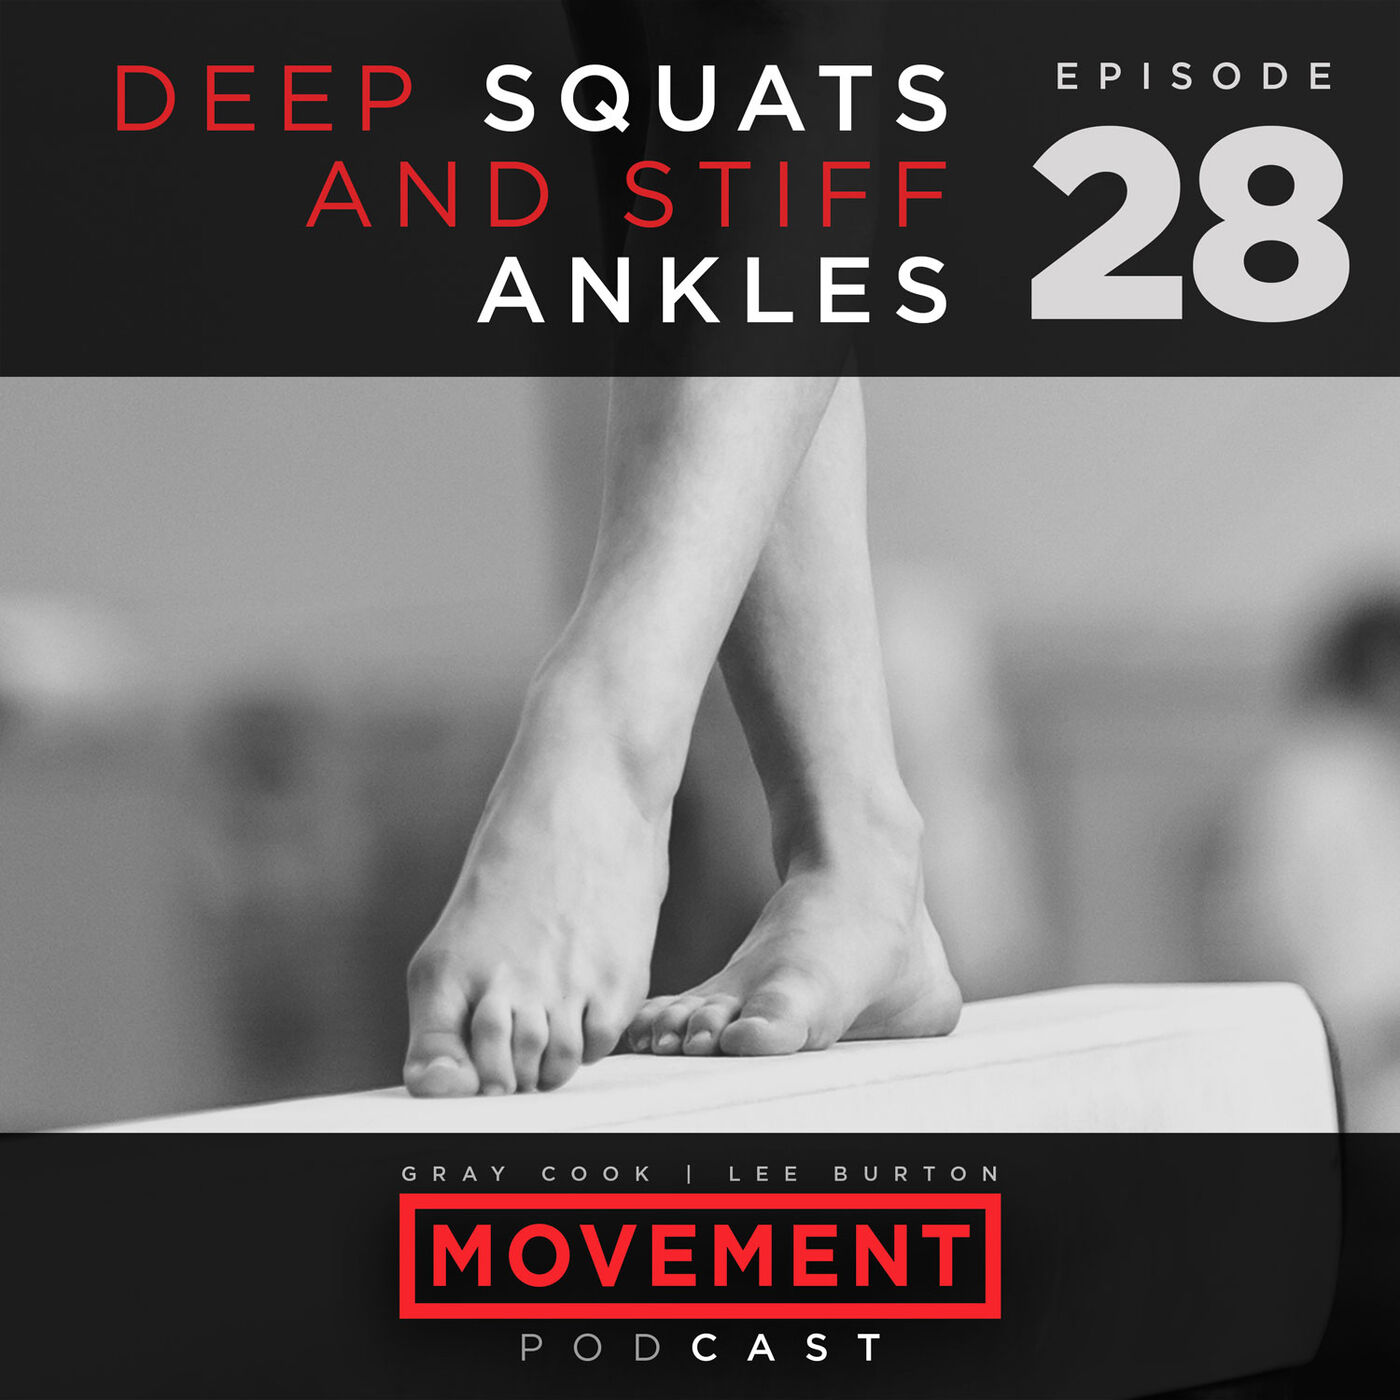 Deep Squats and Stiff Ankles